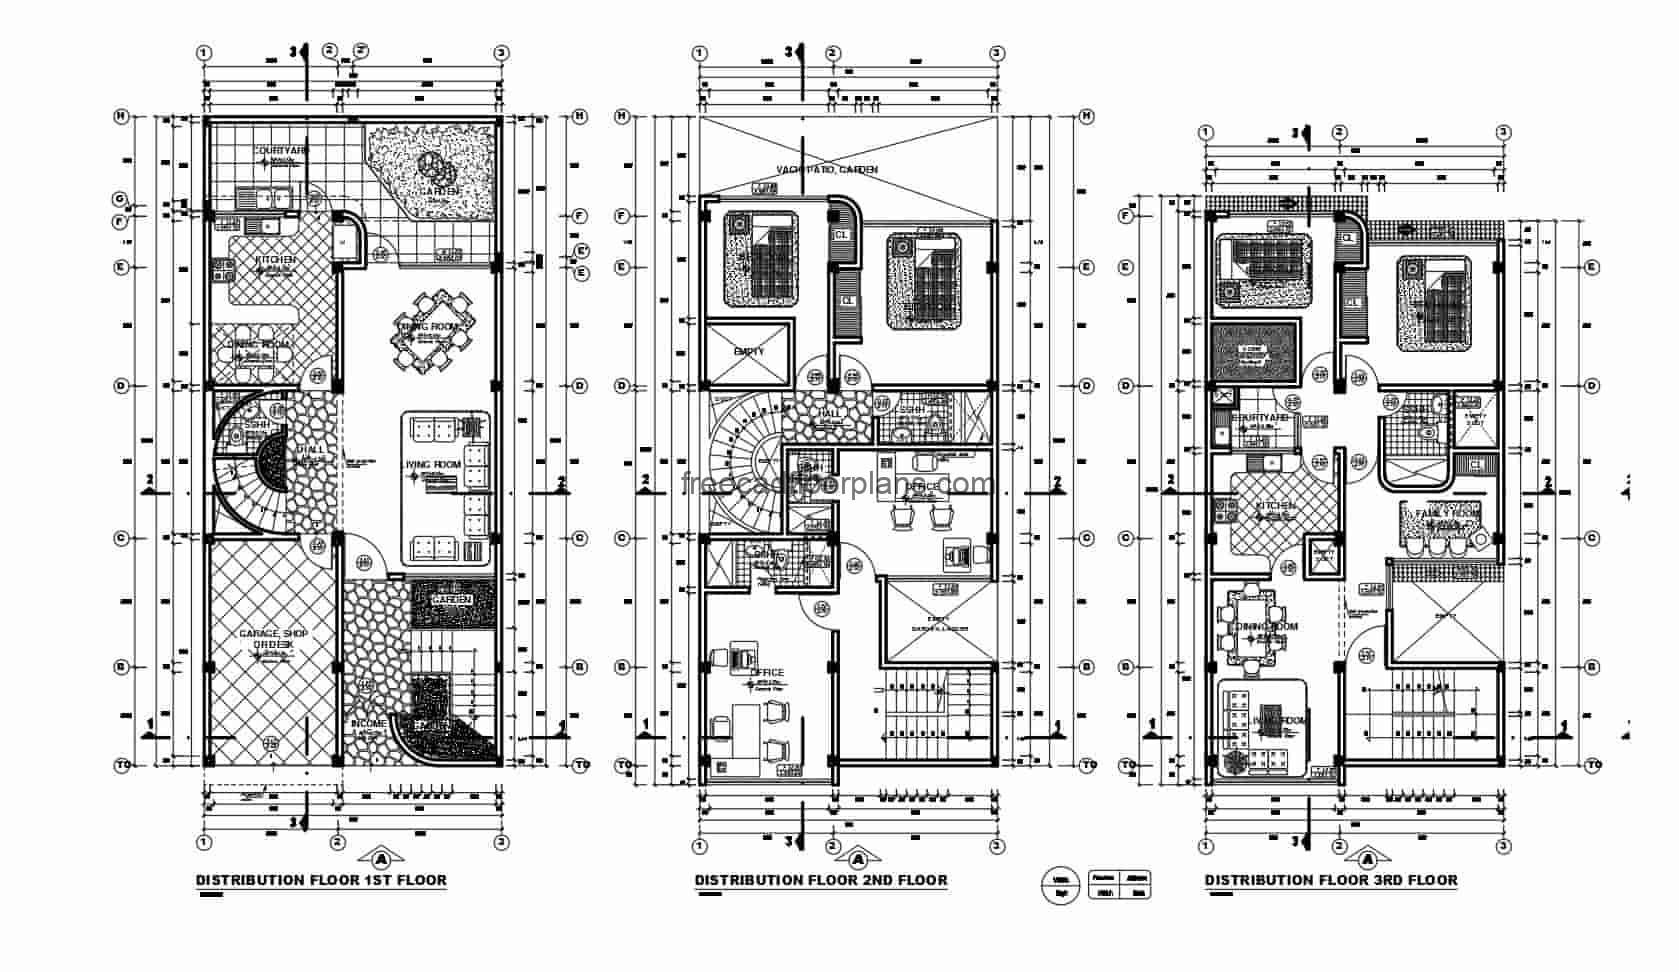 Architectural and dimensional plans in Autocad DWG drawings of a three level building with two houses, 2 rooms for each independent house, several offices and a usable roof, plan in editable format for free download.